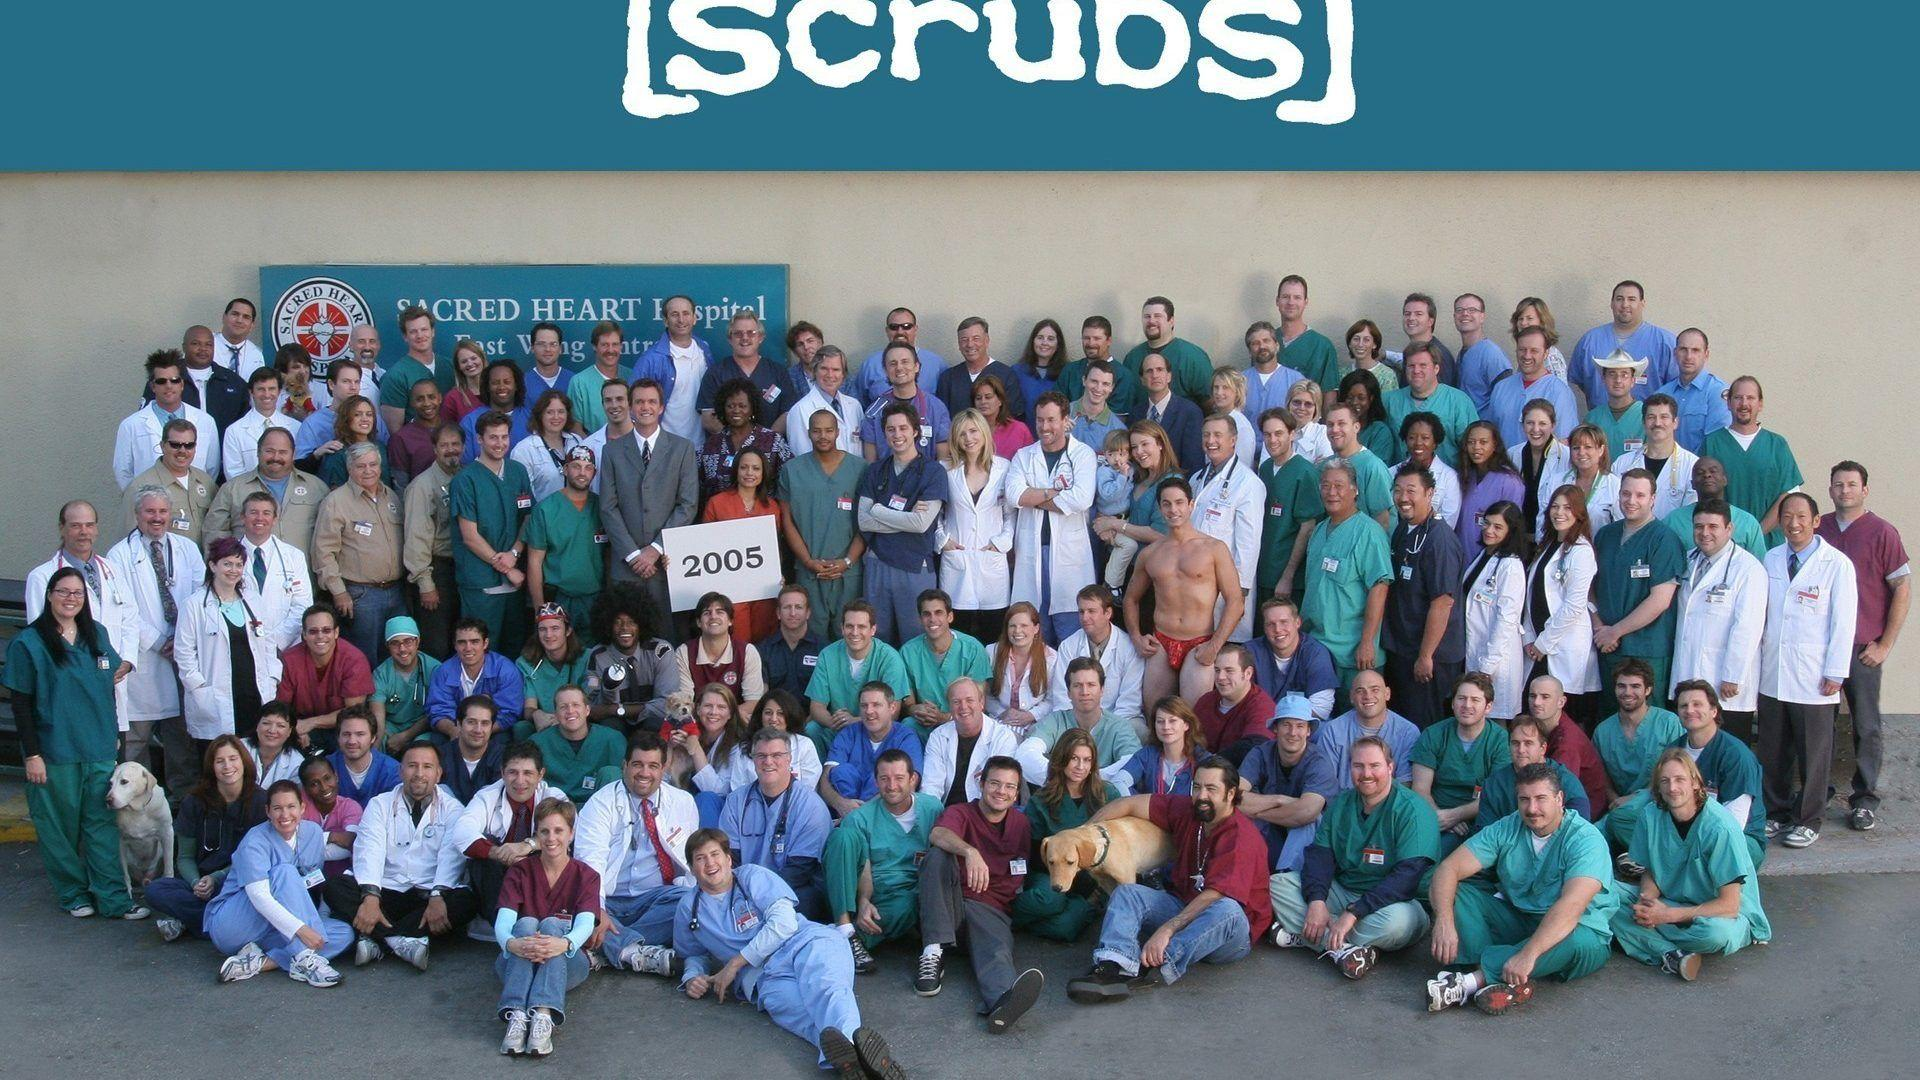 TV Shows: Scrubs Phone Wallpapers 1920x1200 for HD 16:9 High